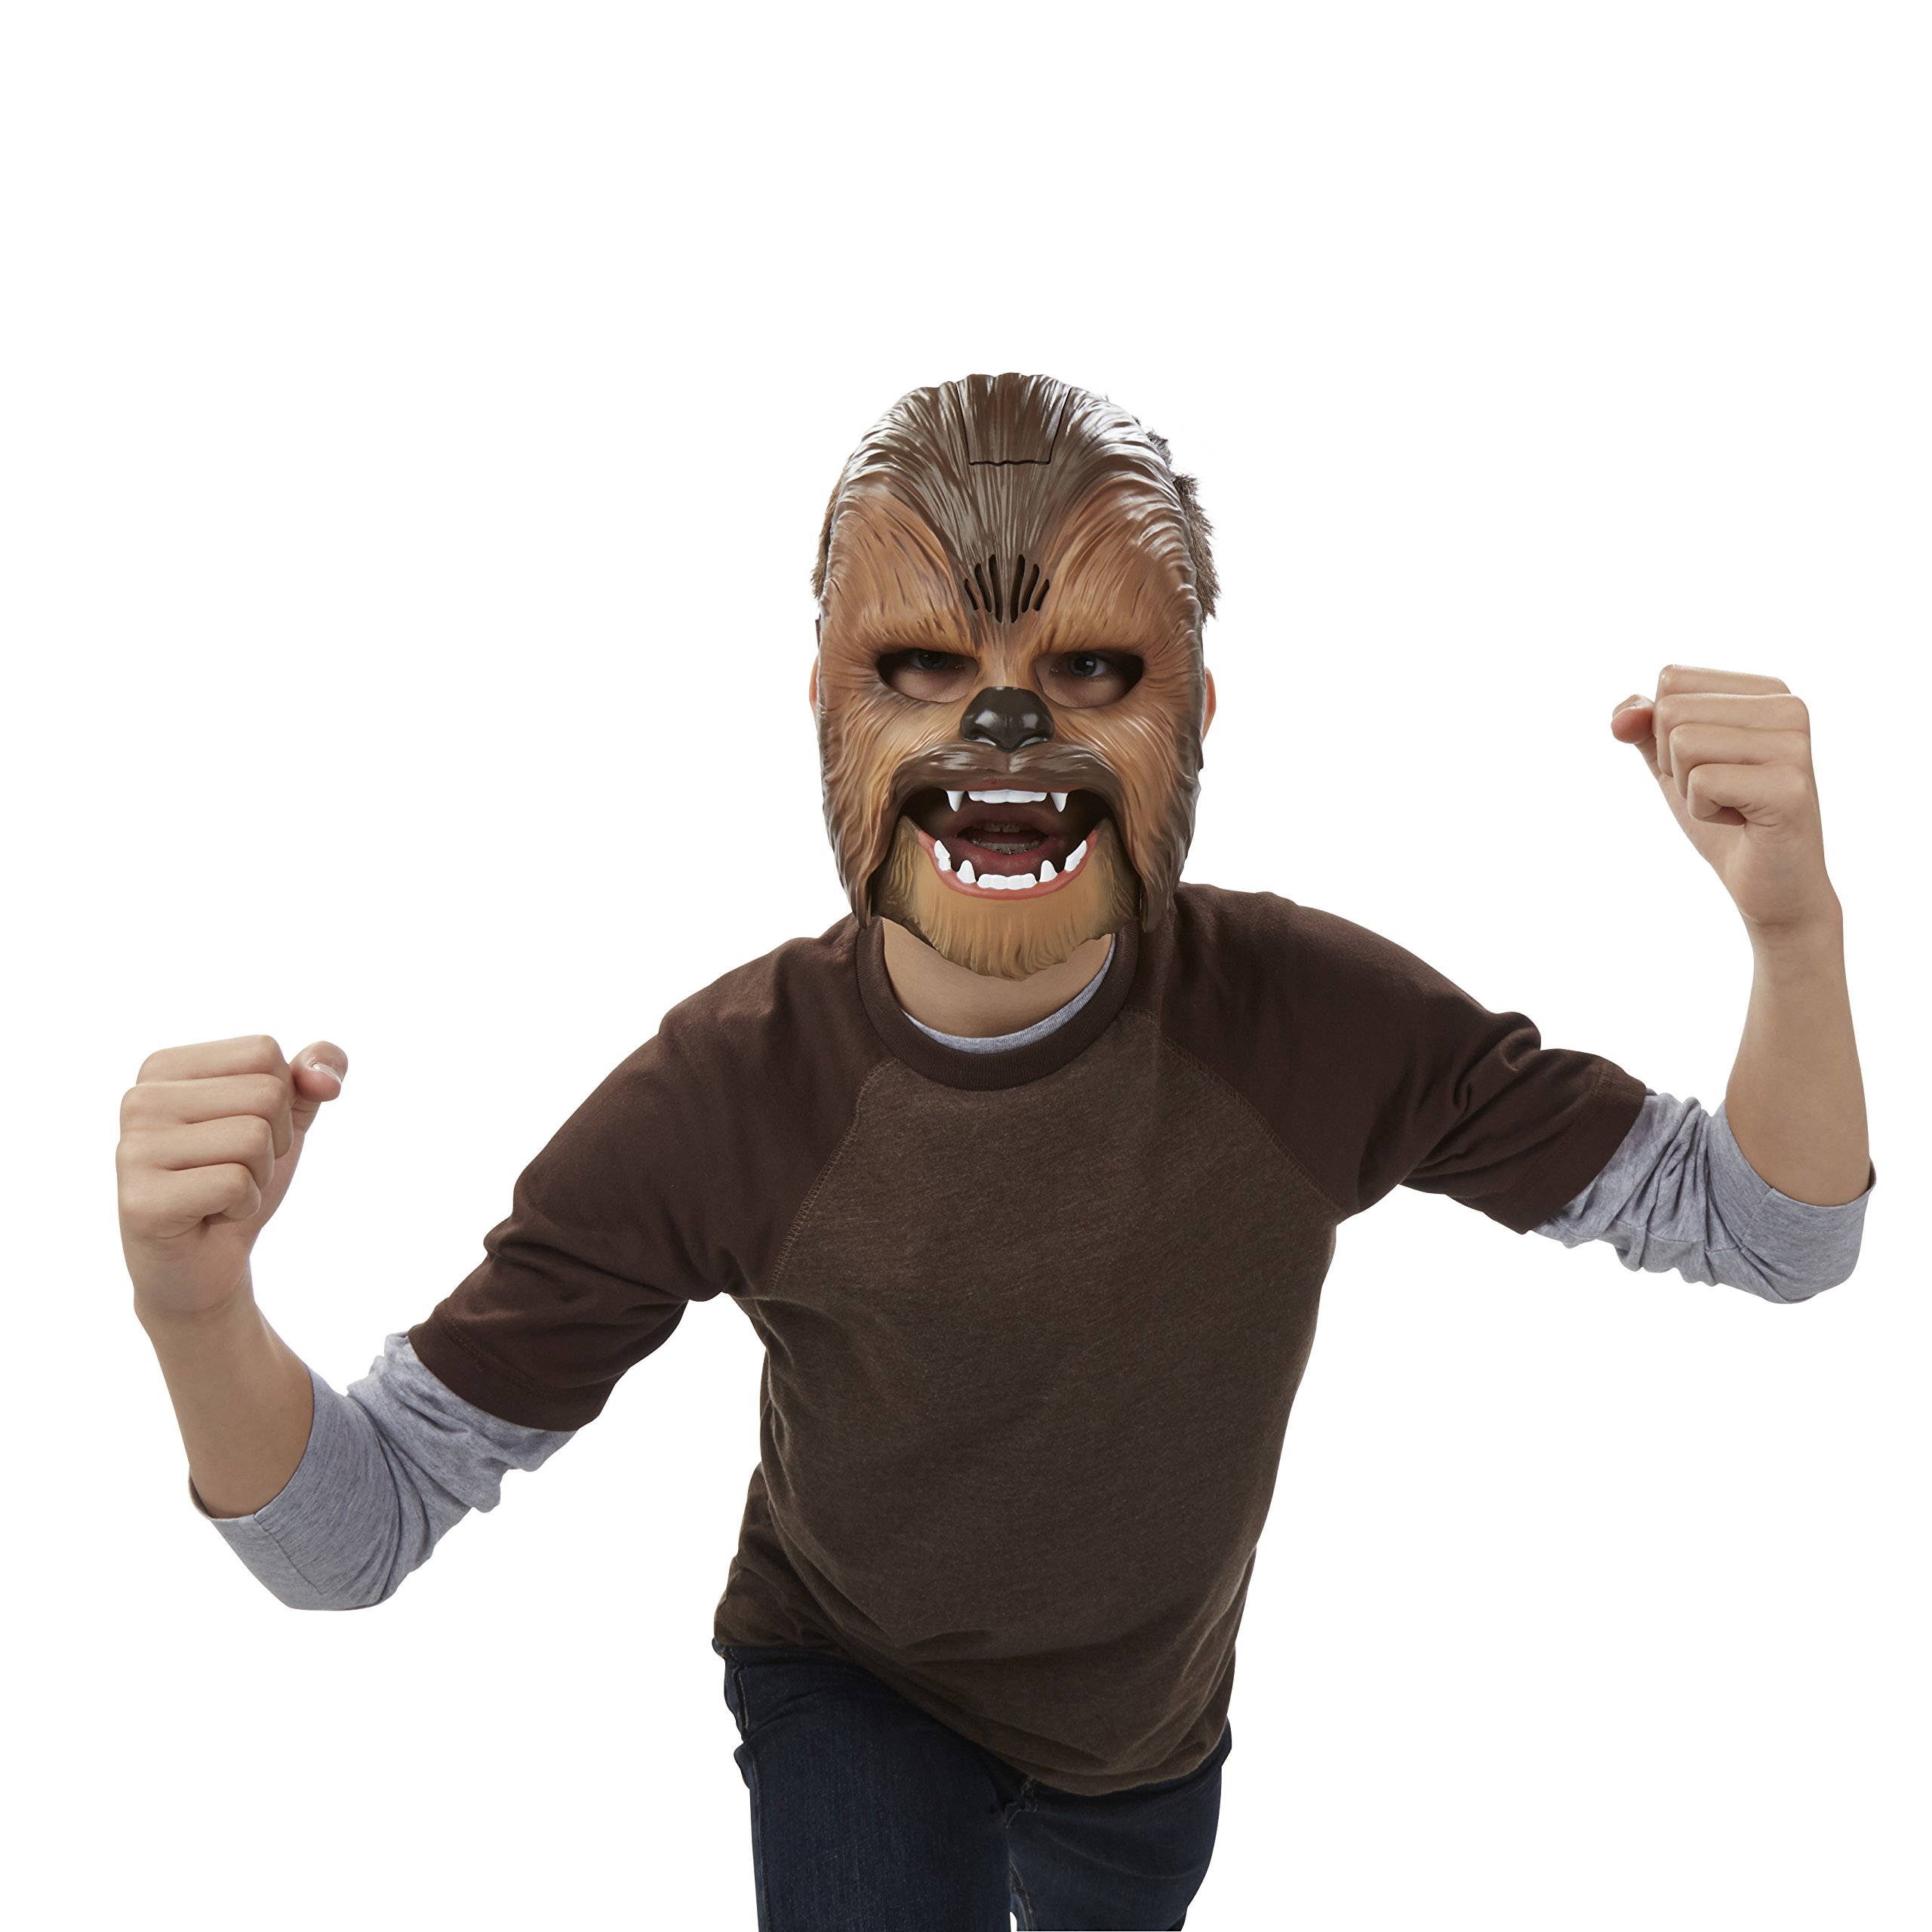 Star Wars Movie Roaring Chewbacca Wookiee Sounds Mask, Ages 5 and up (Amazon Exclusive) by Star Wars (Image #4)